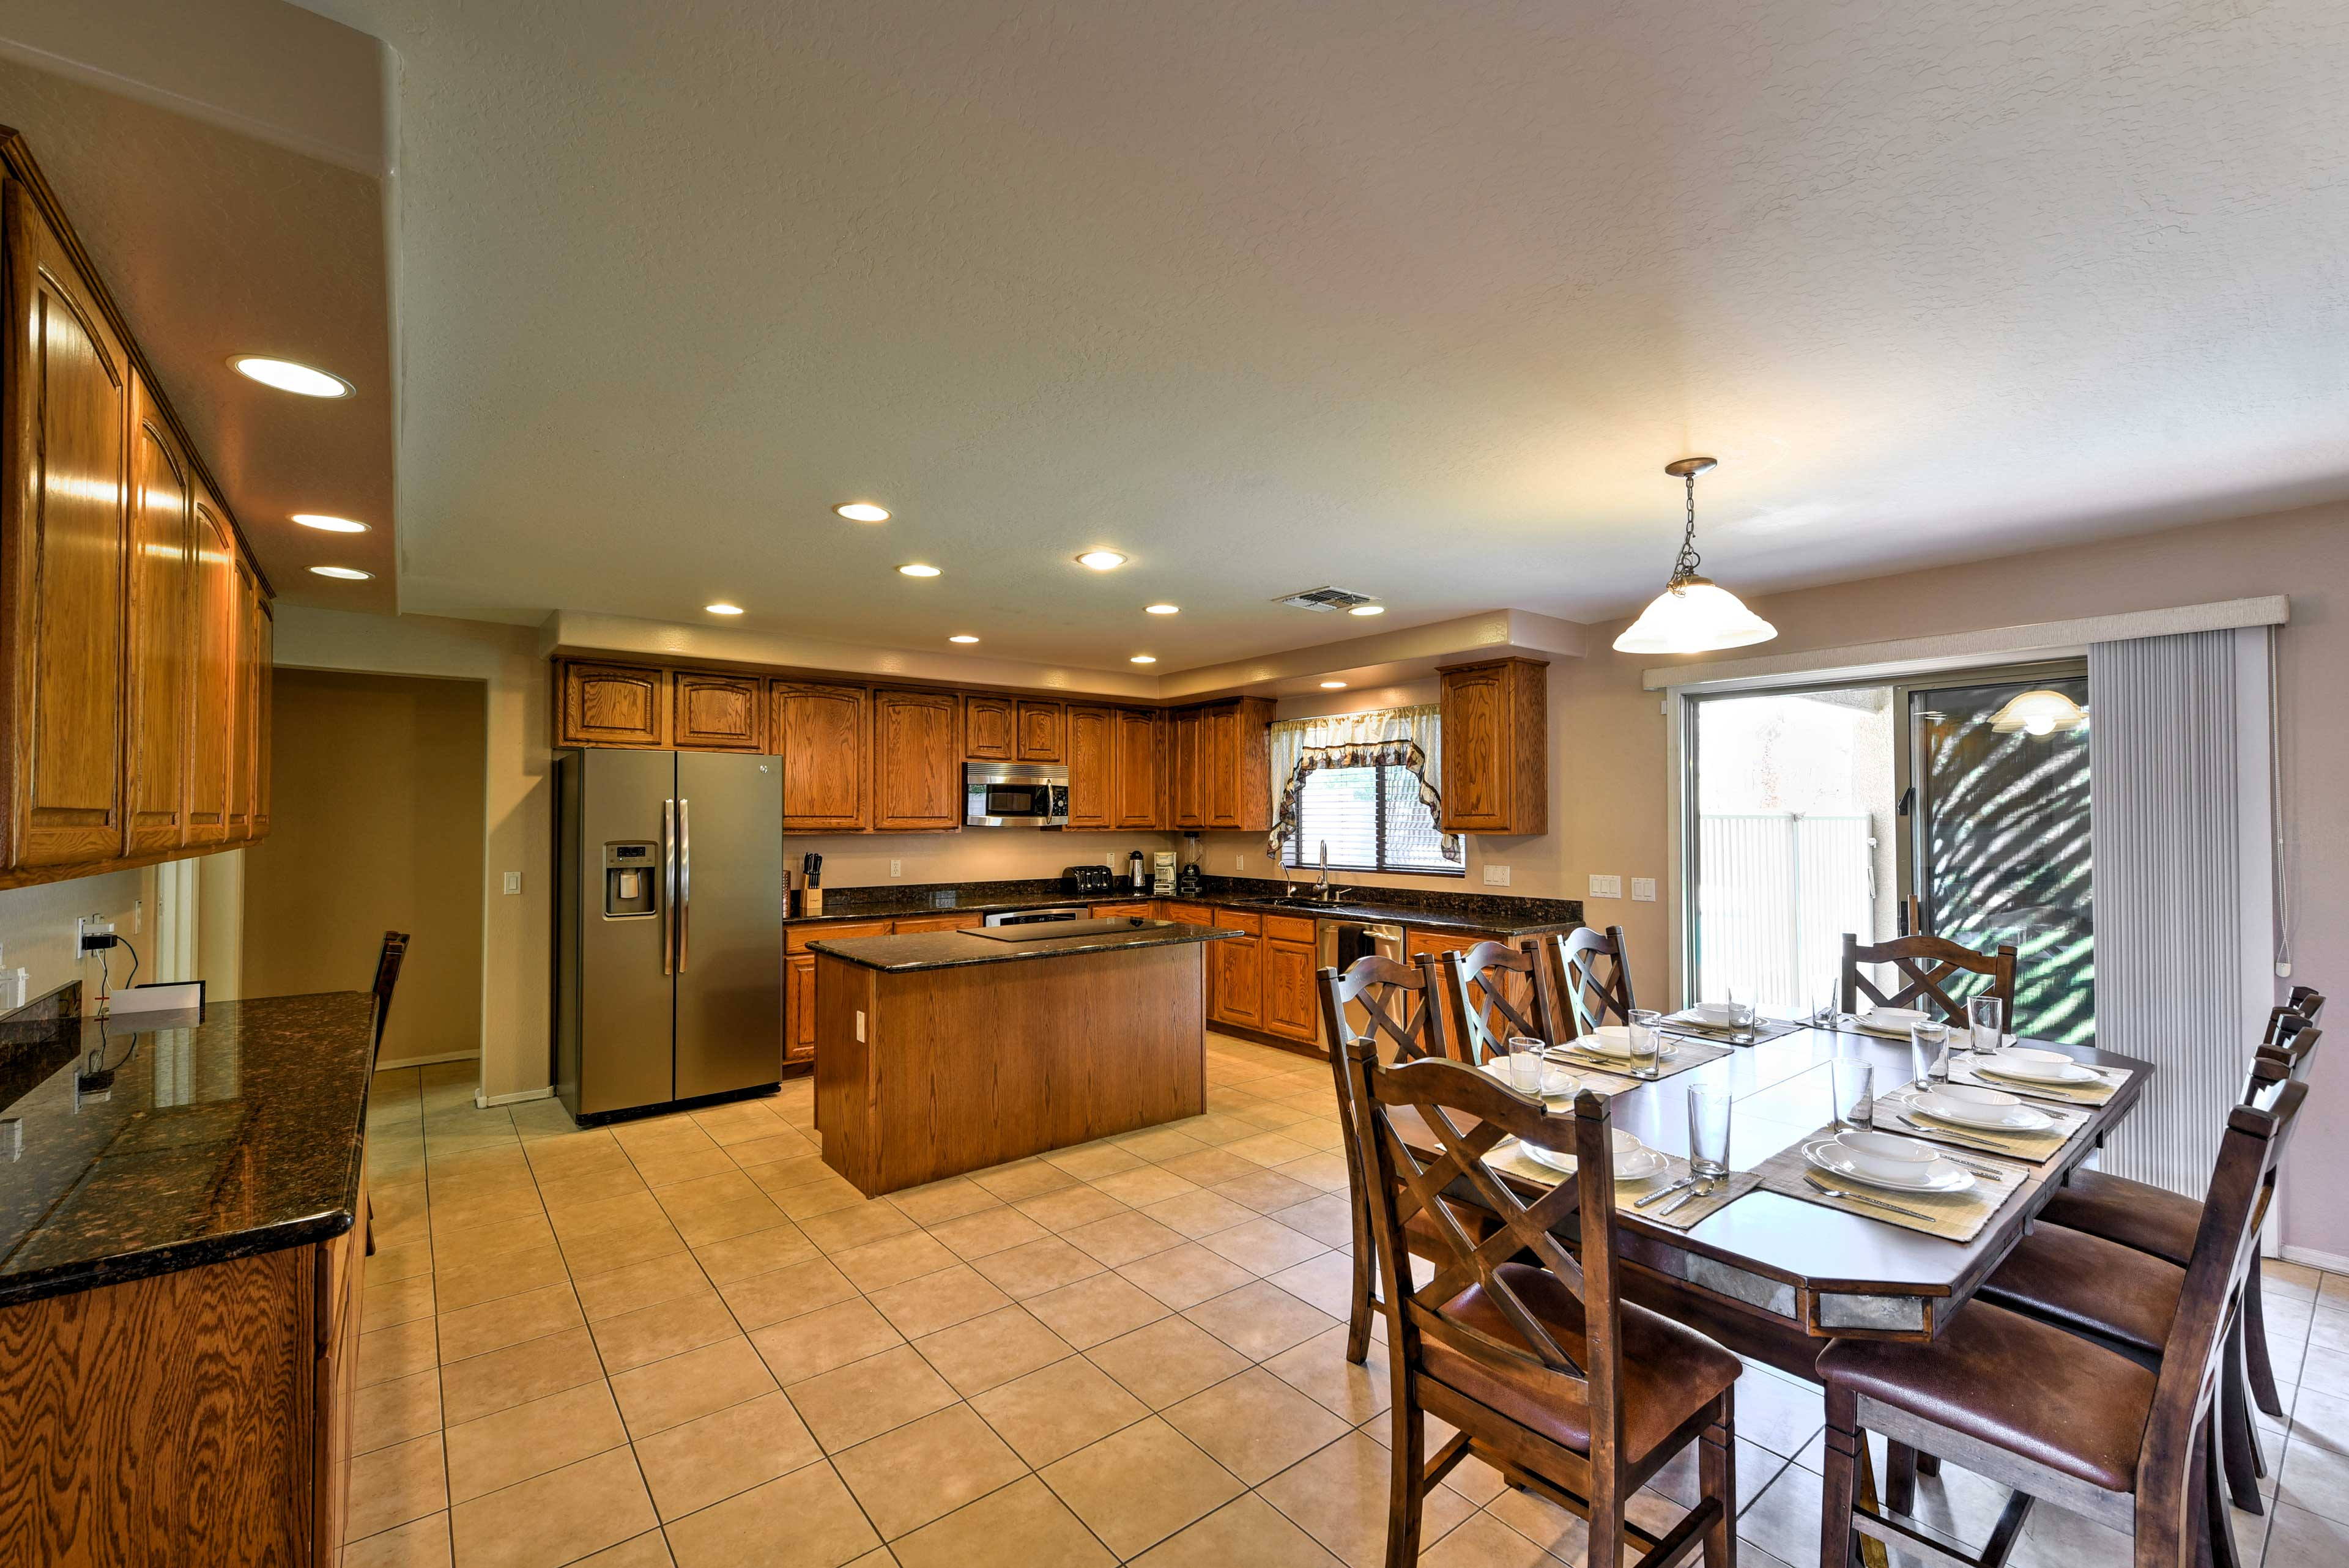 Kitchen with ample counter space and a dining table to serve home-cooked meals!